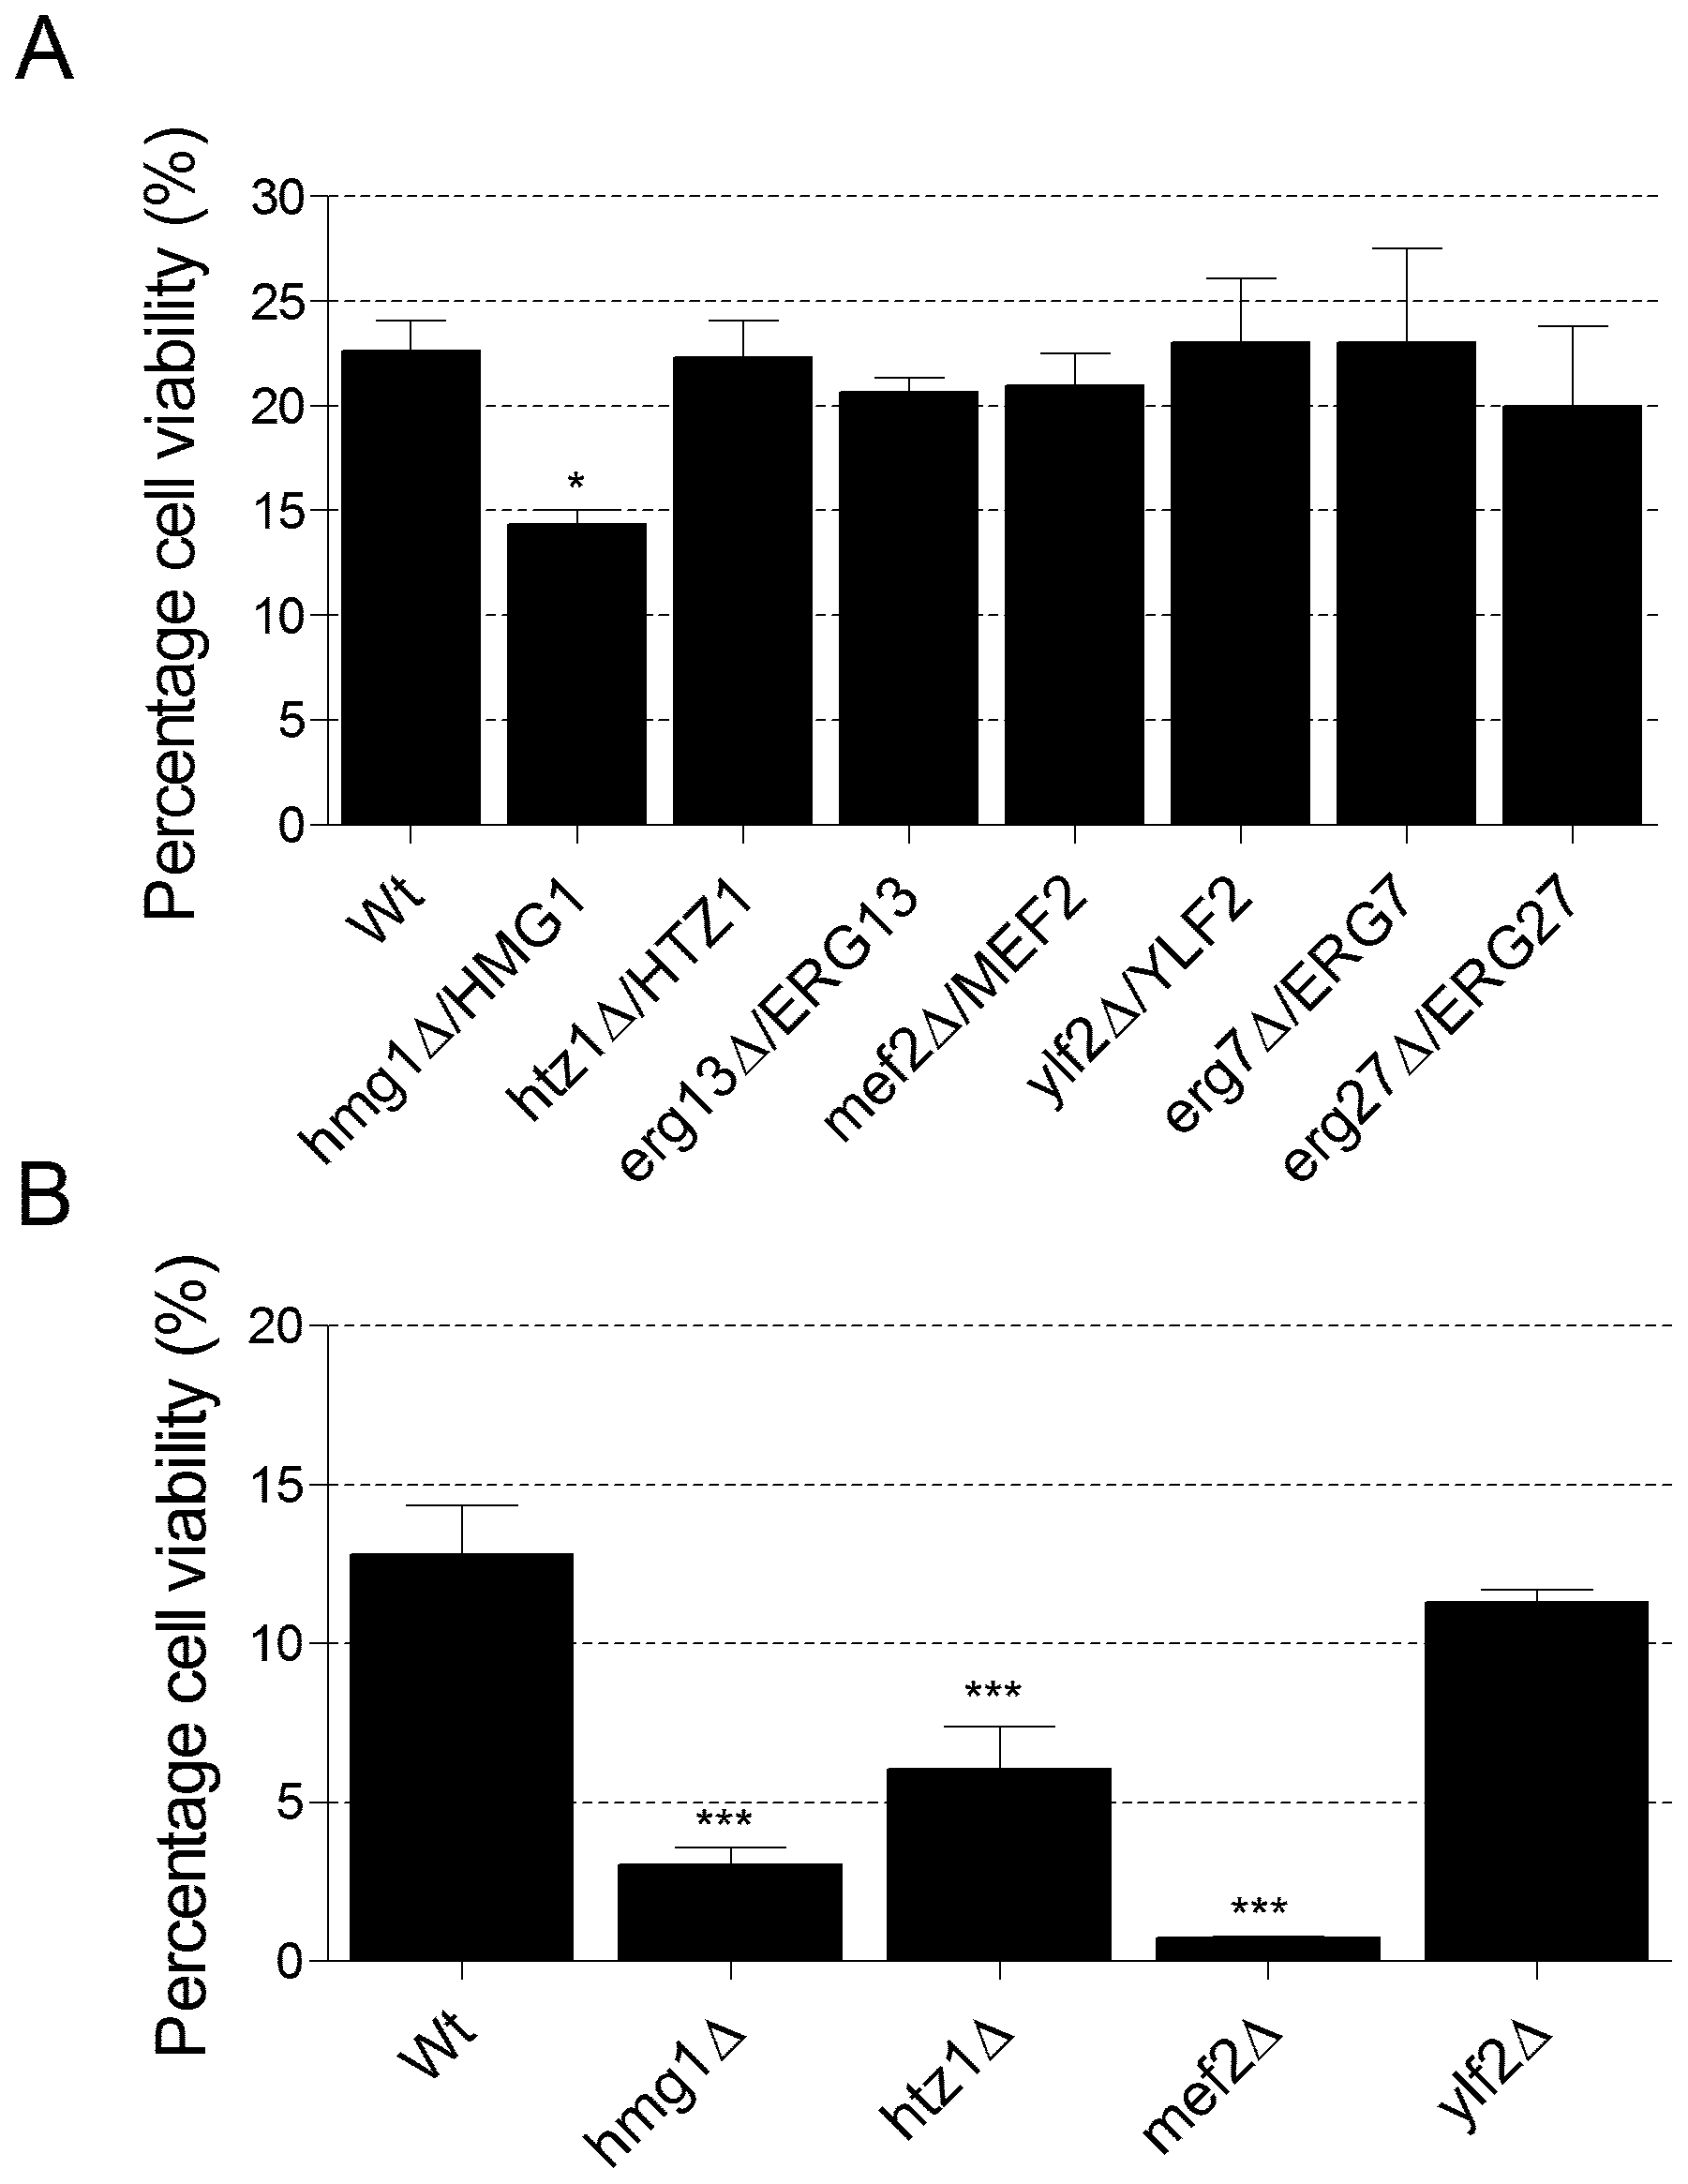 Viability of yeast heterozygous and haploid deletion mutants in atorvastatin after 5 days.